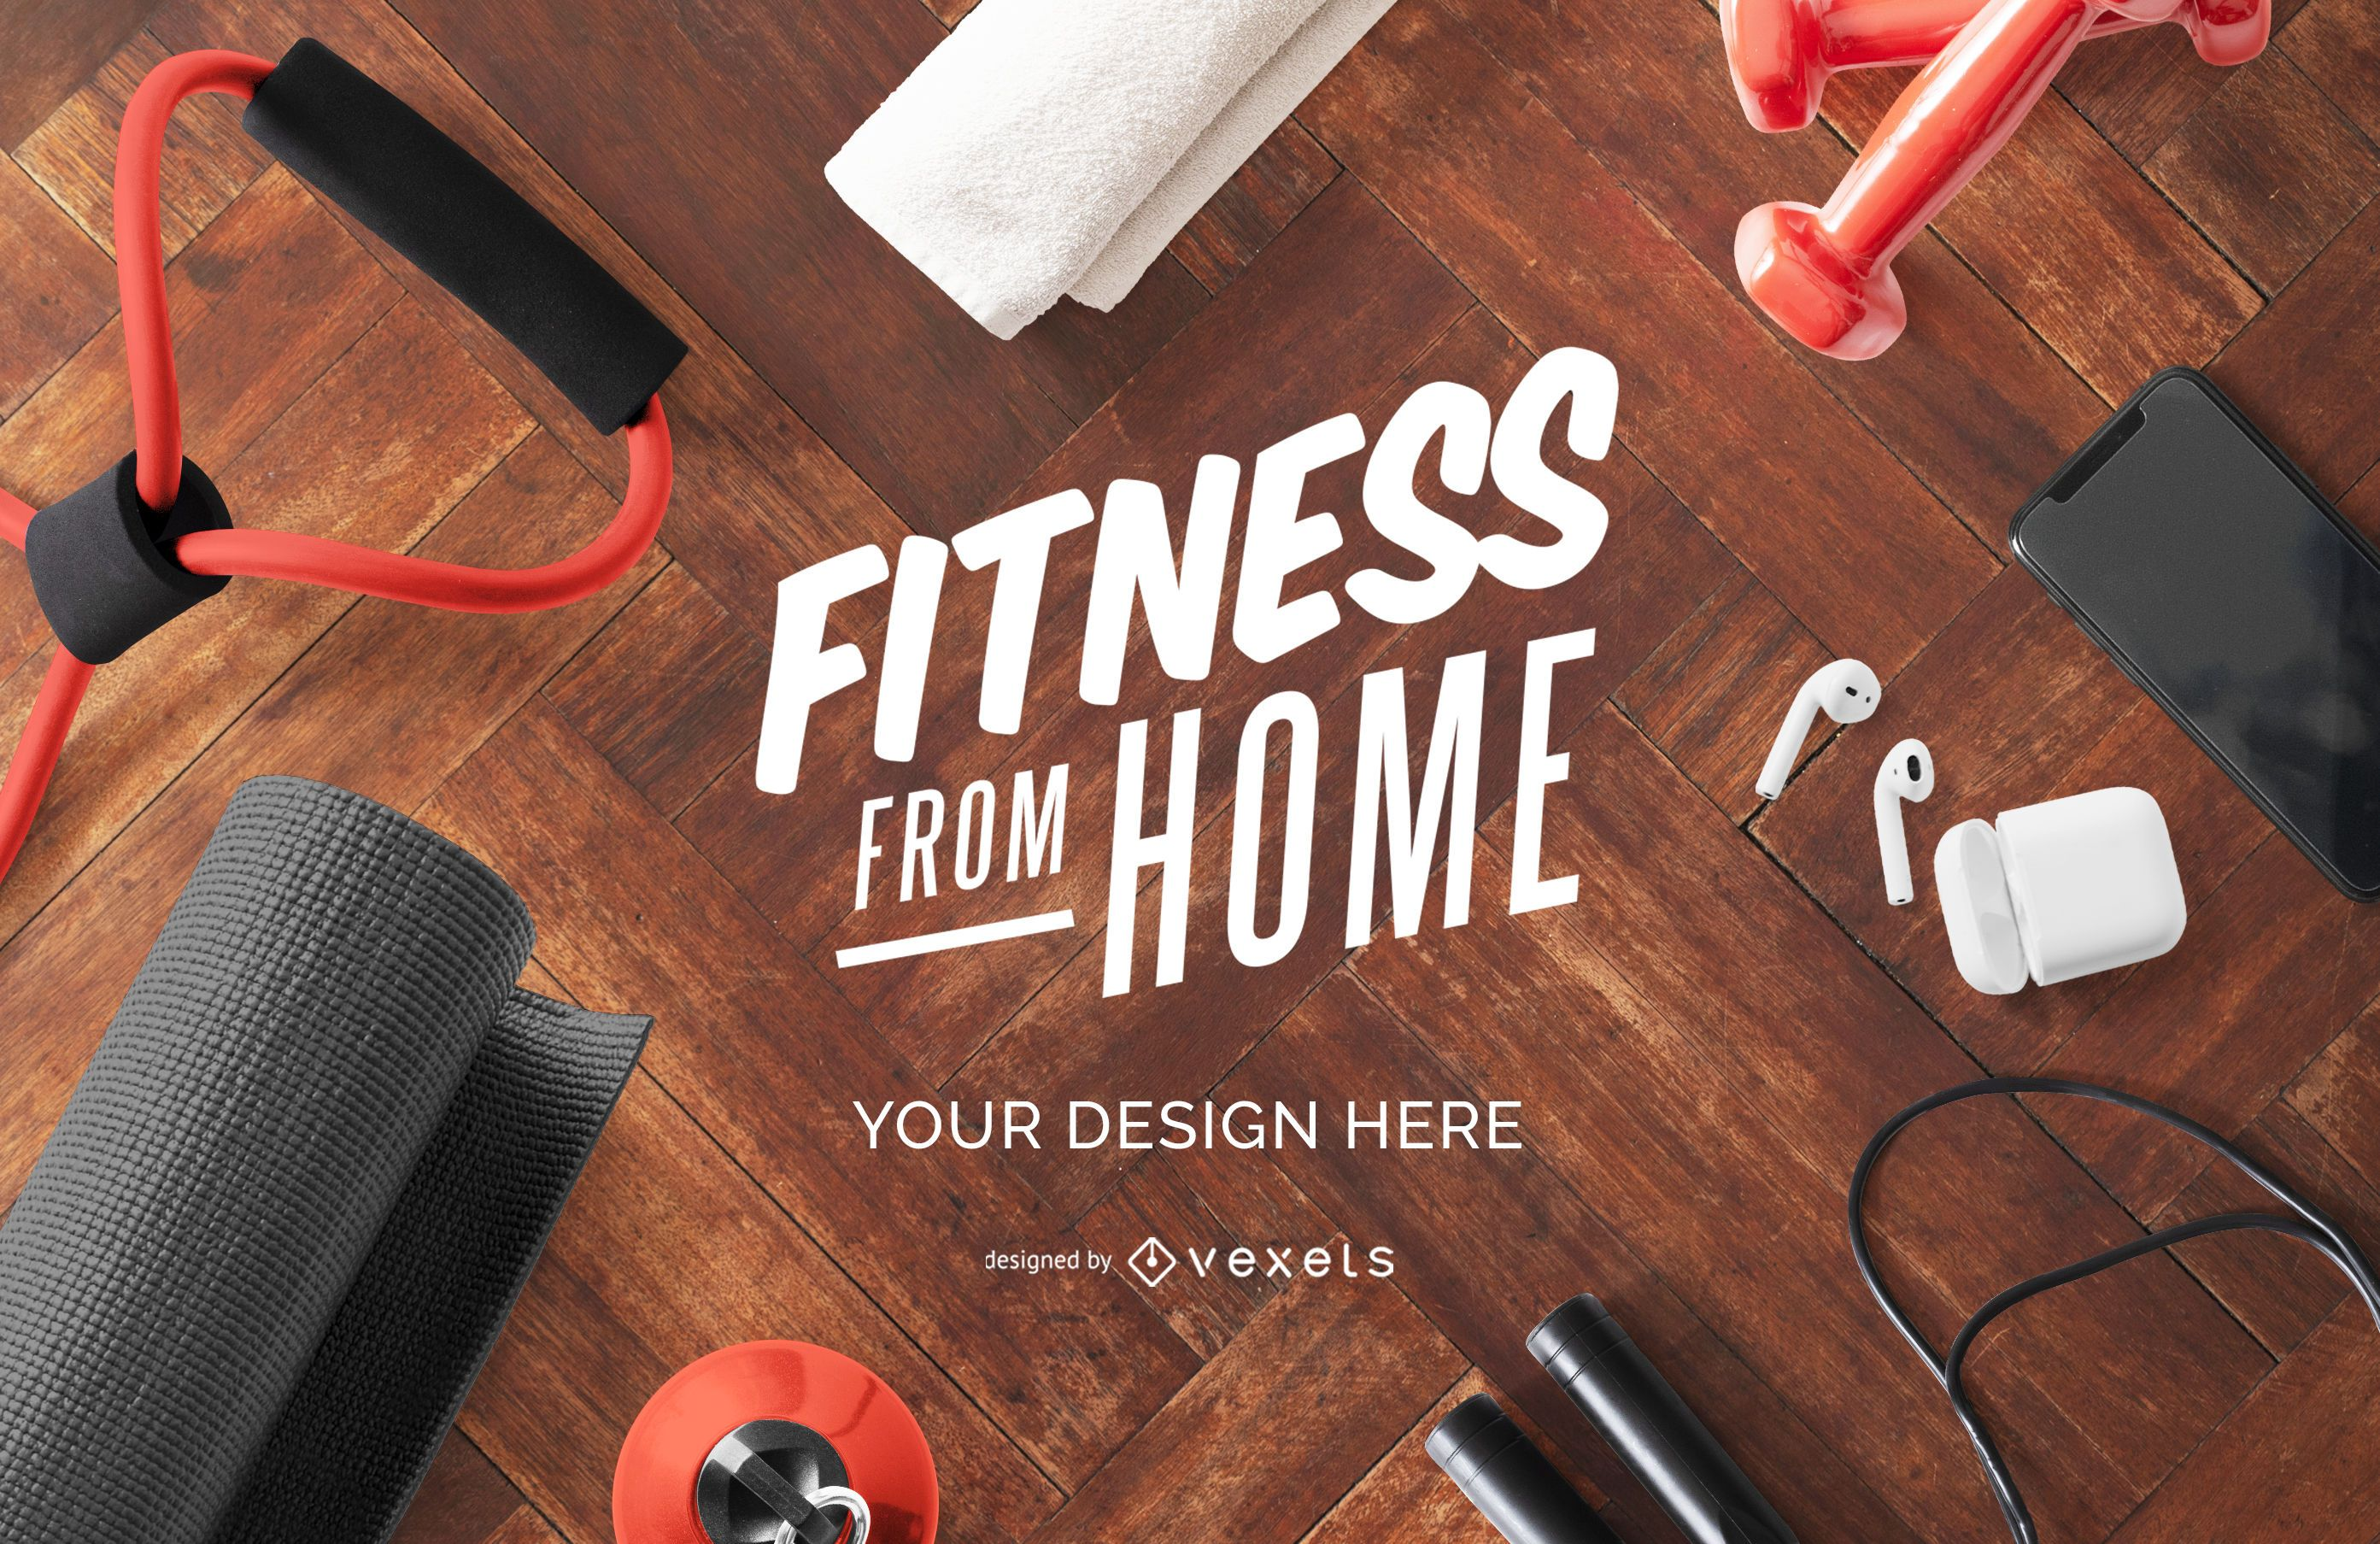 Fitness from home mockup composition